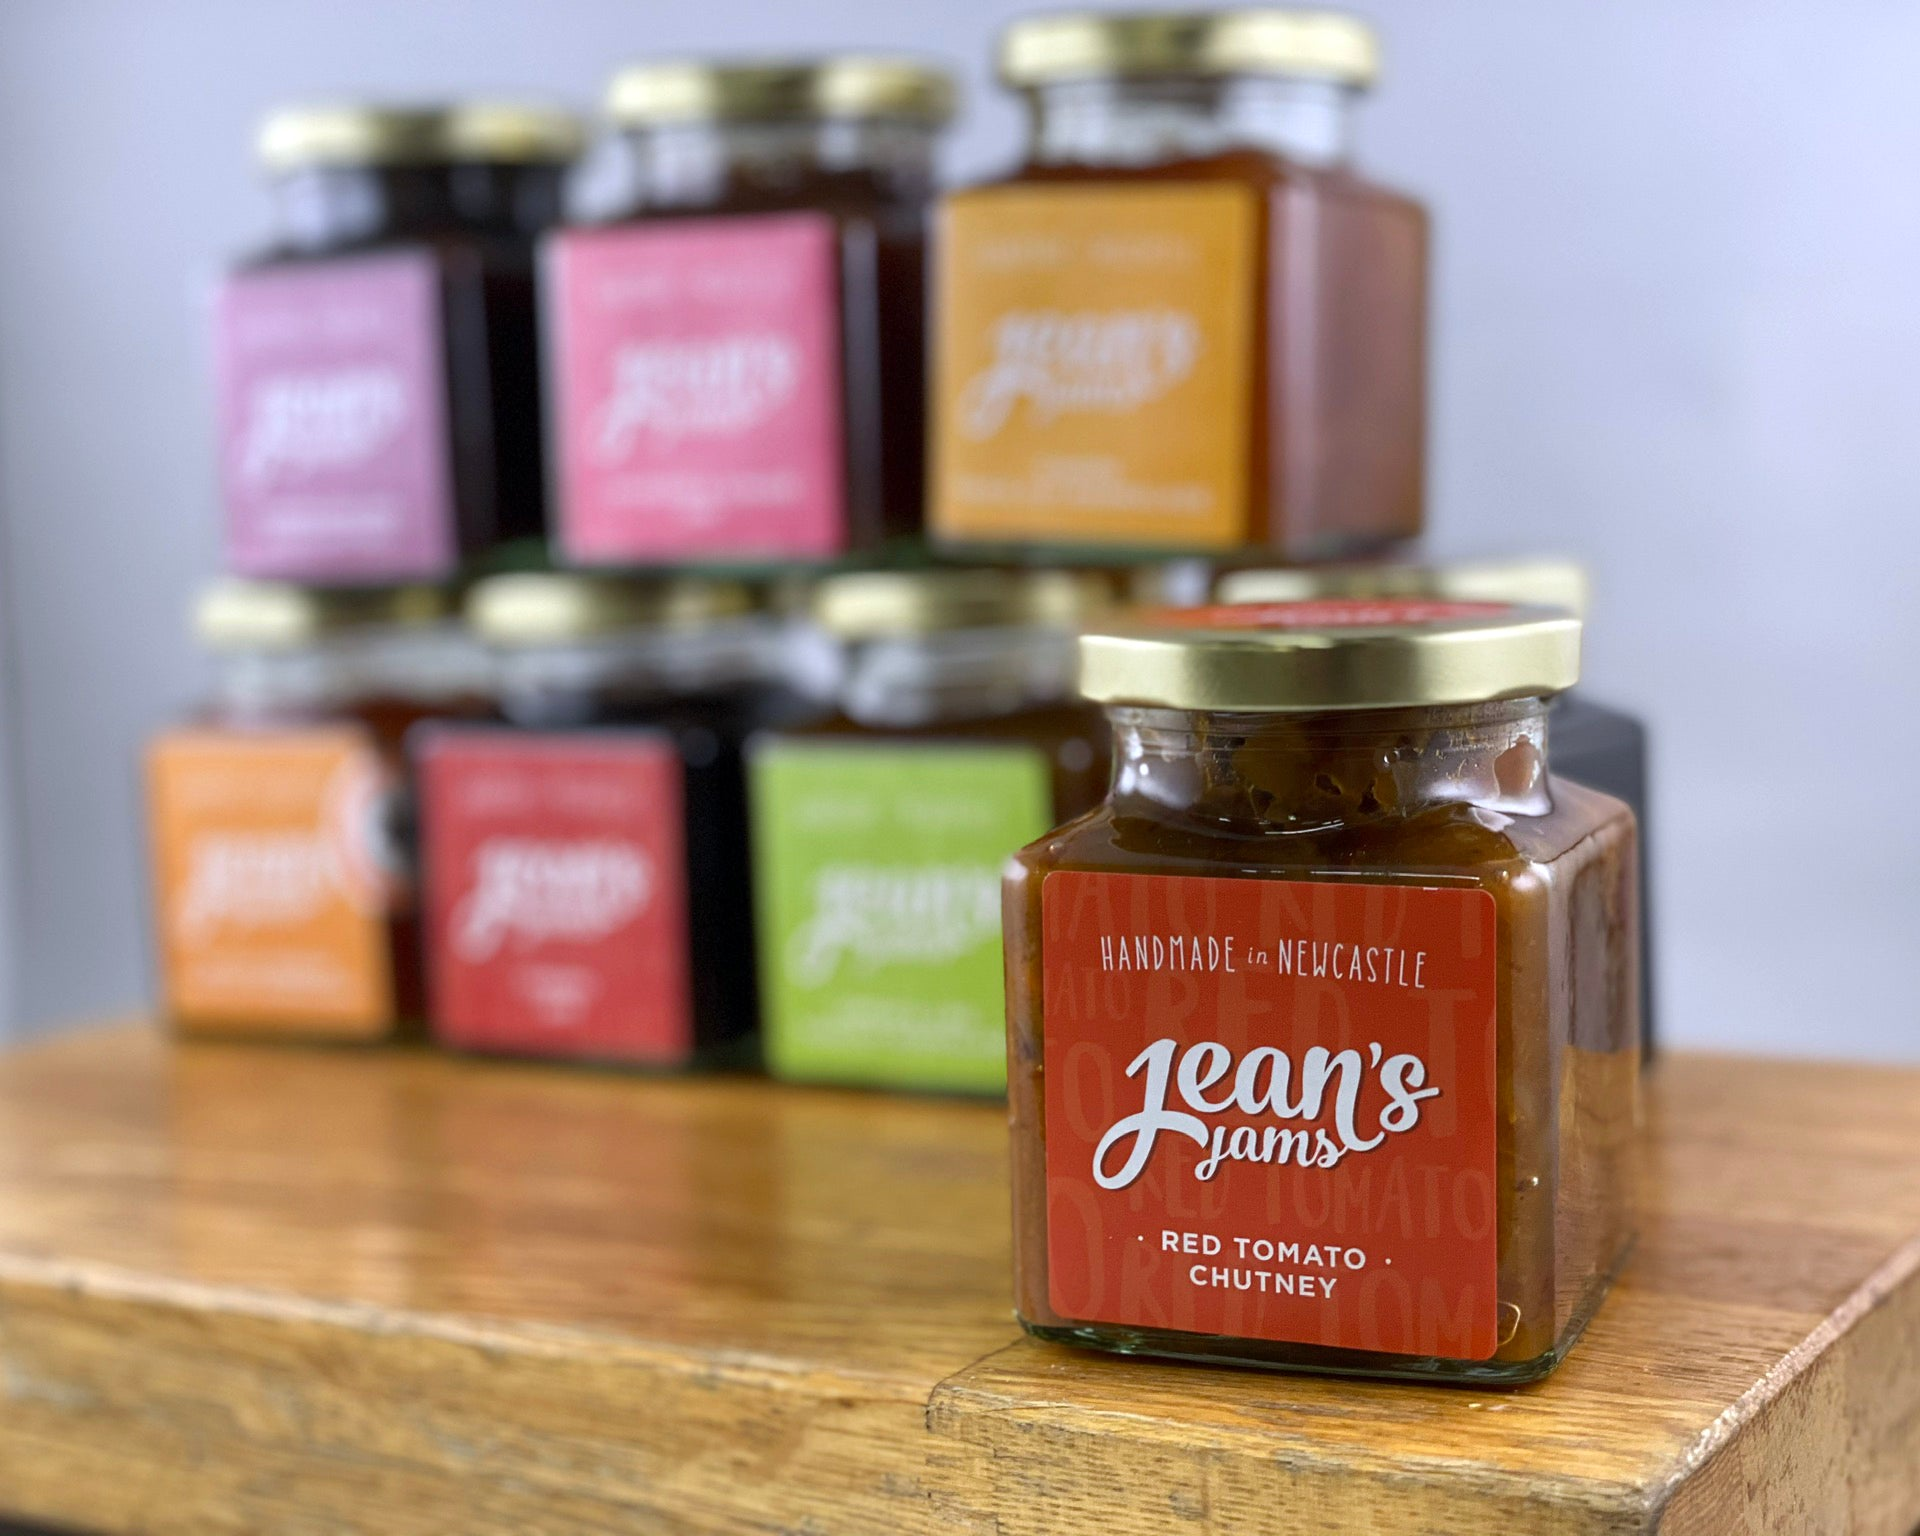 Northern Delicious: Jean's Jams 'Red Tomato Chutney'